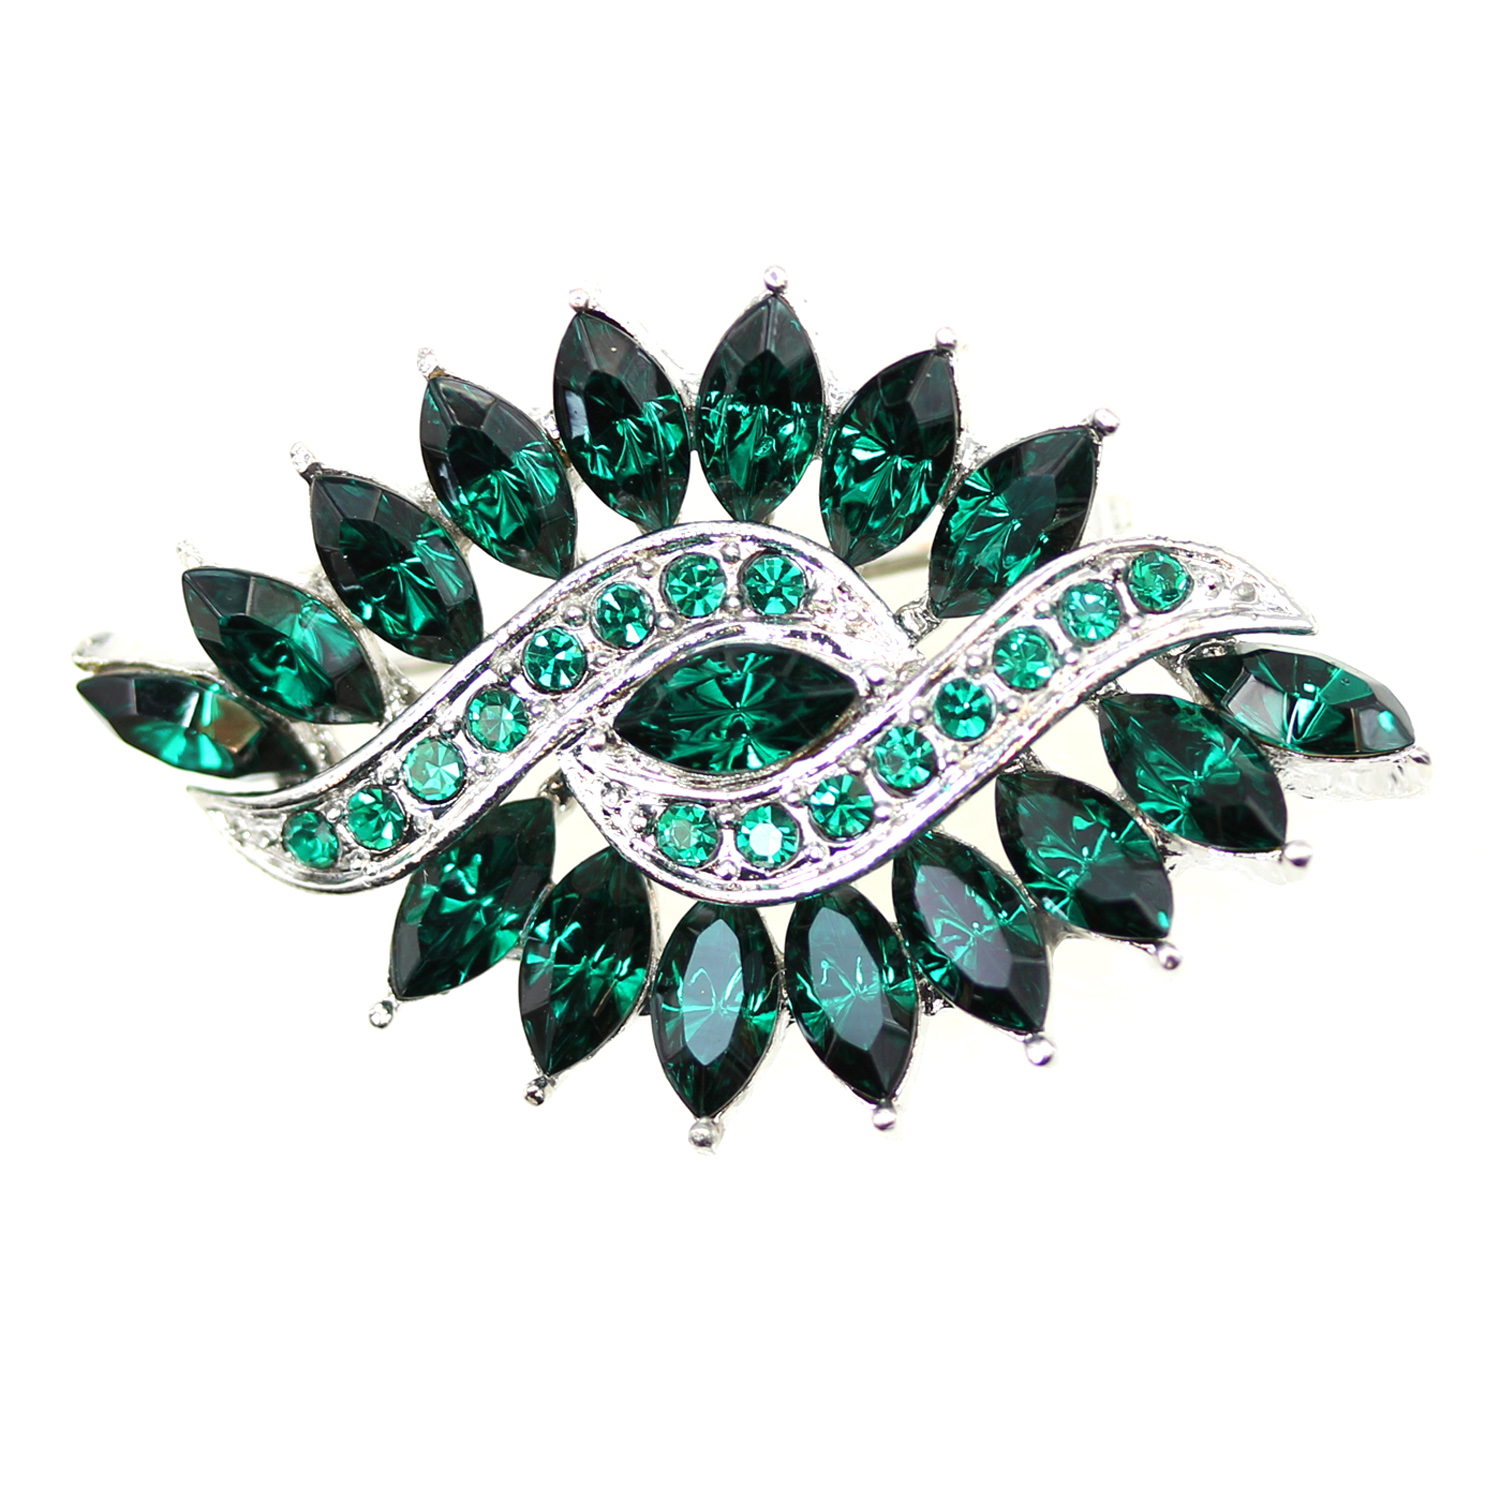 Faship Olive Shape Oval Green Rhinestone Crystal Floral Pin Brooch by